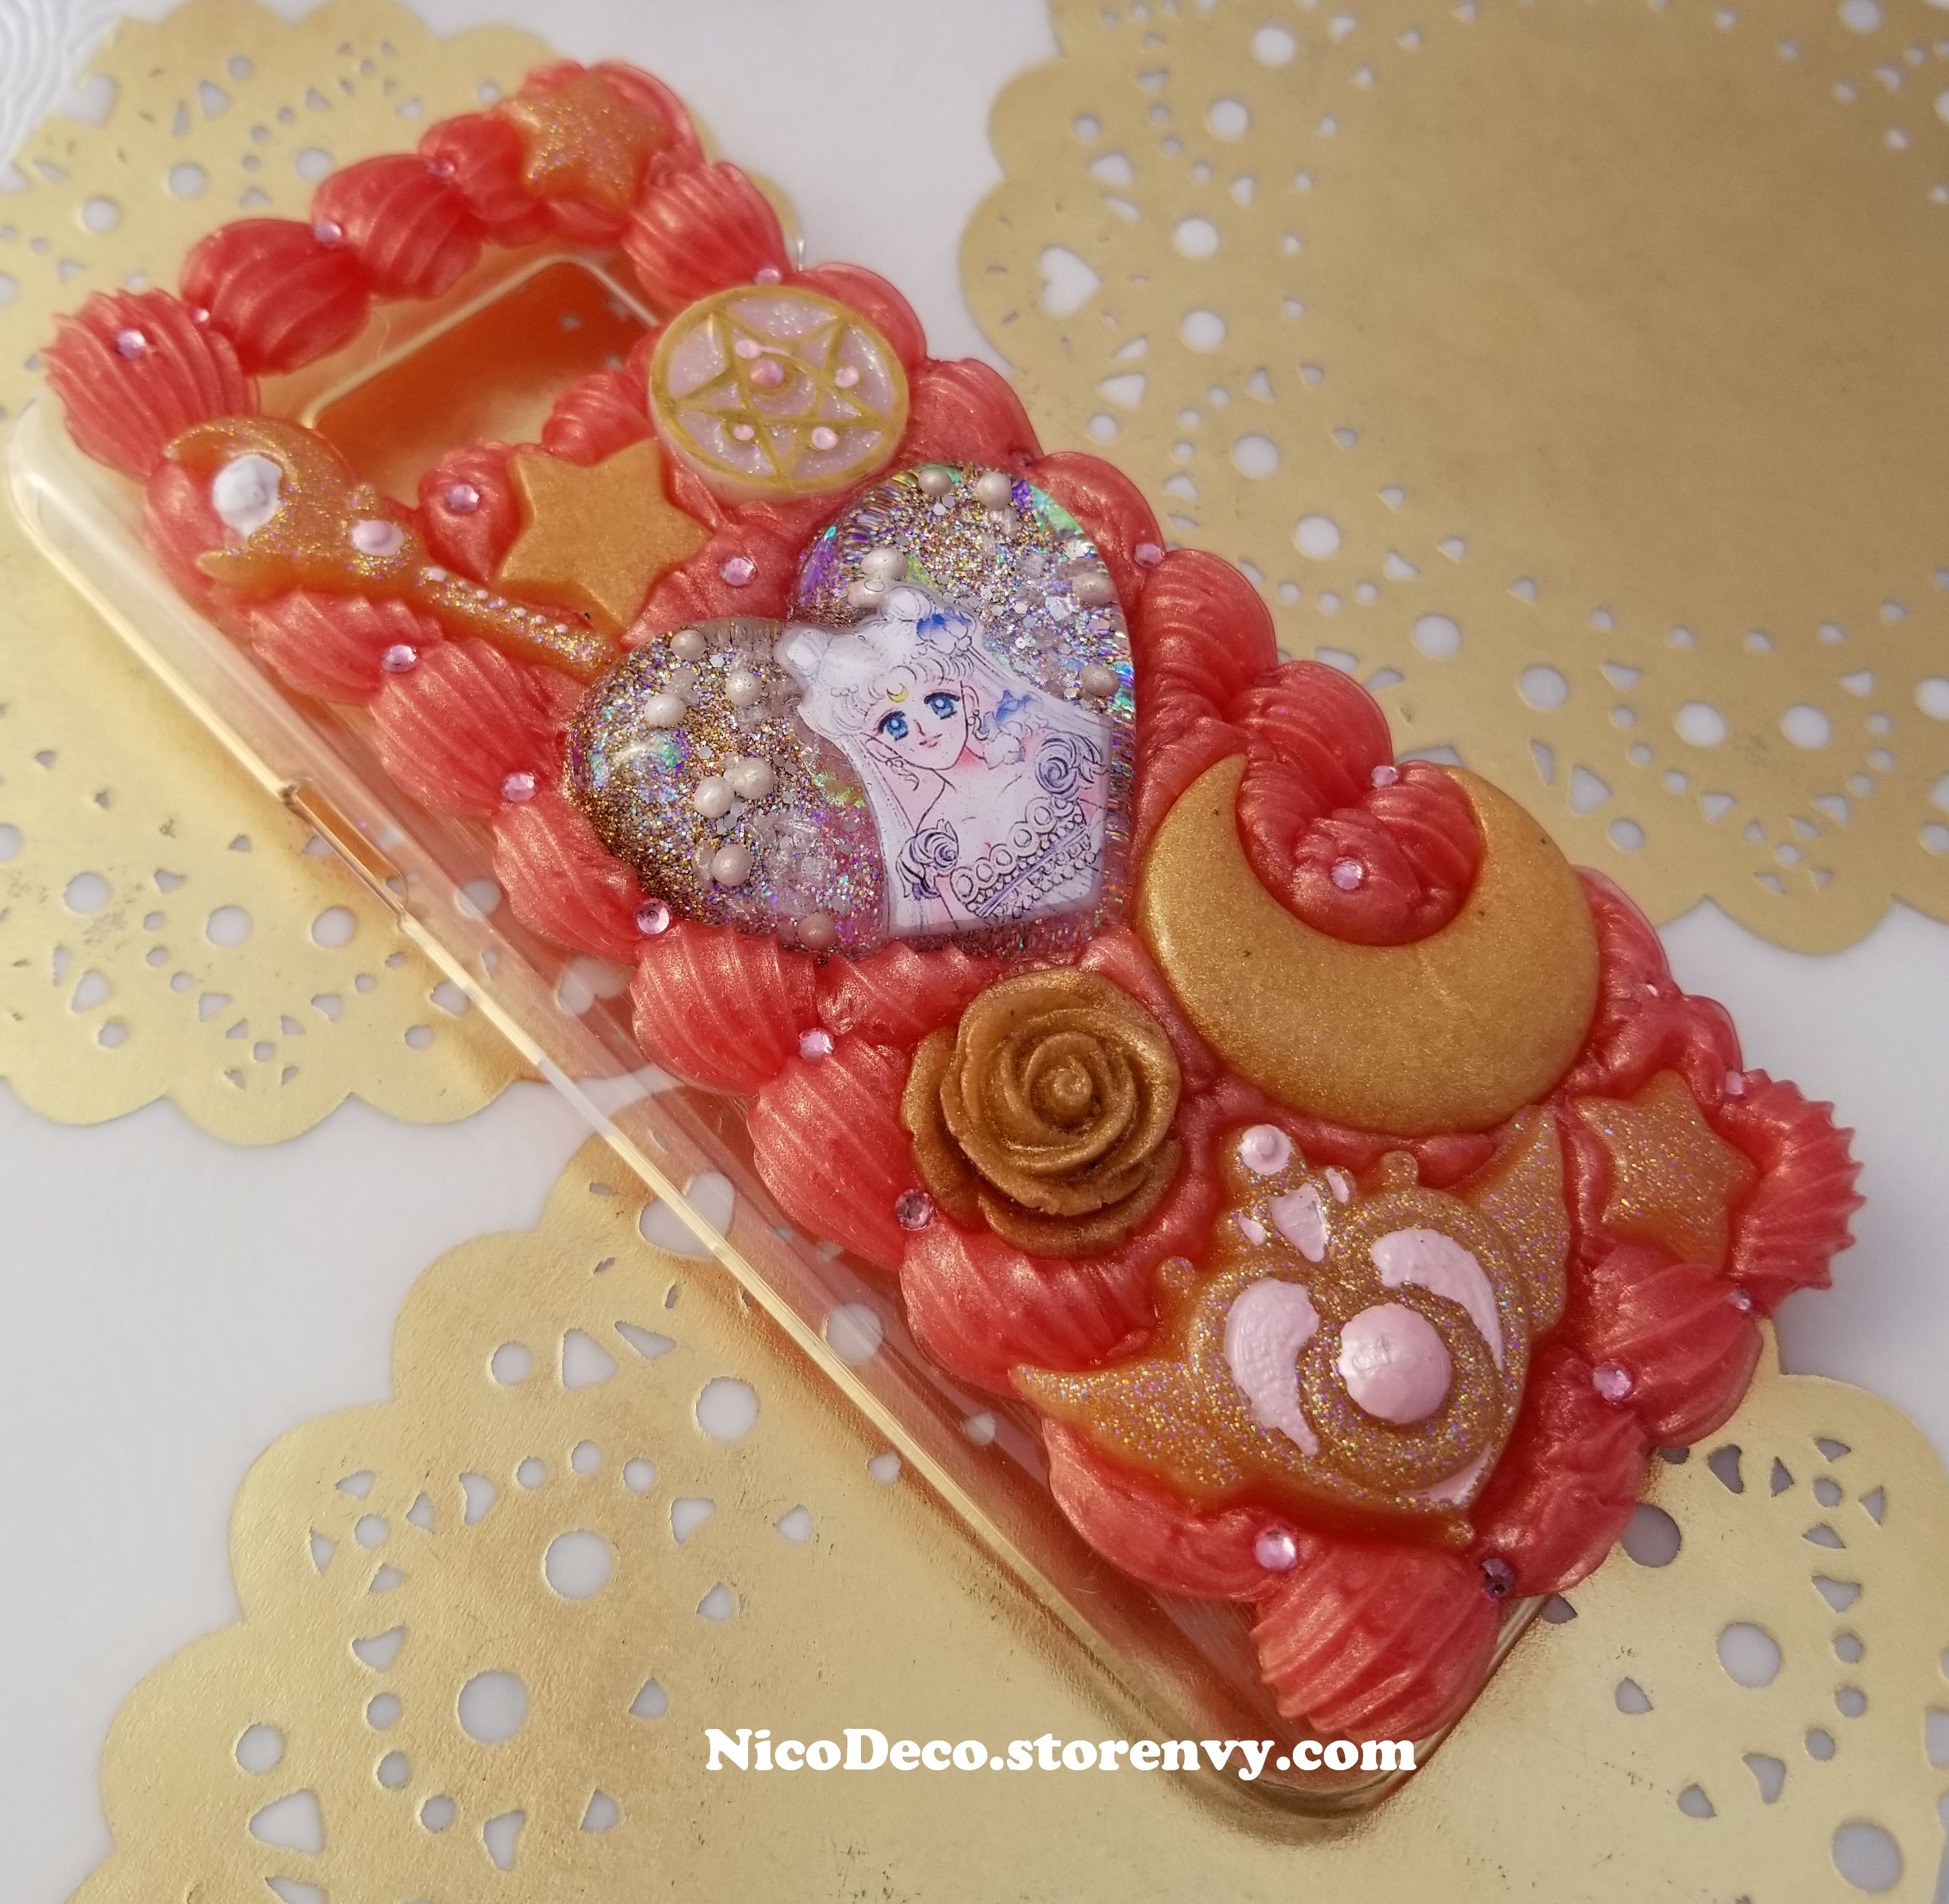 lowest price 1fdfb a68ad Sailor Moon Princess Serenity rose gold decoden whipped cream cell phone  case for Samsung Galaxy s8 PLUS s8+ from Nico Deco